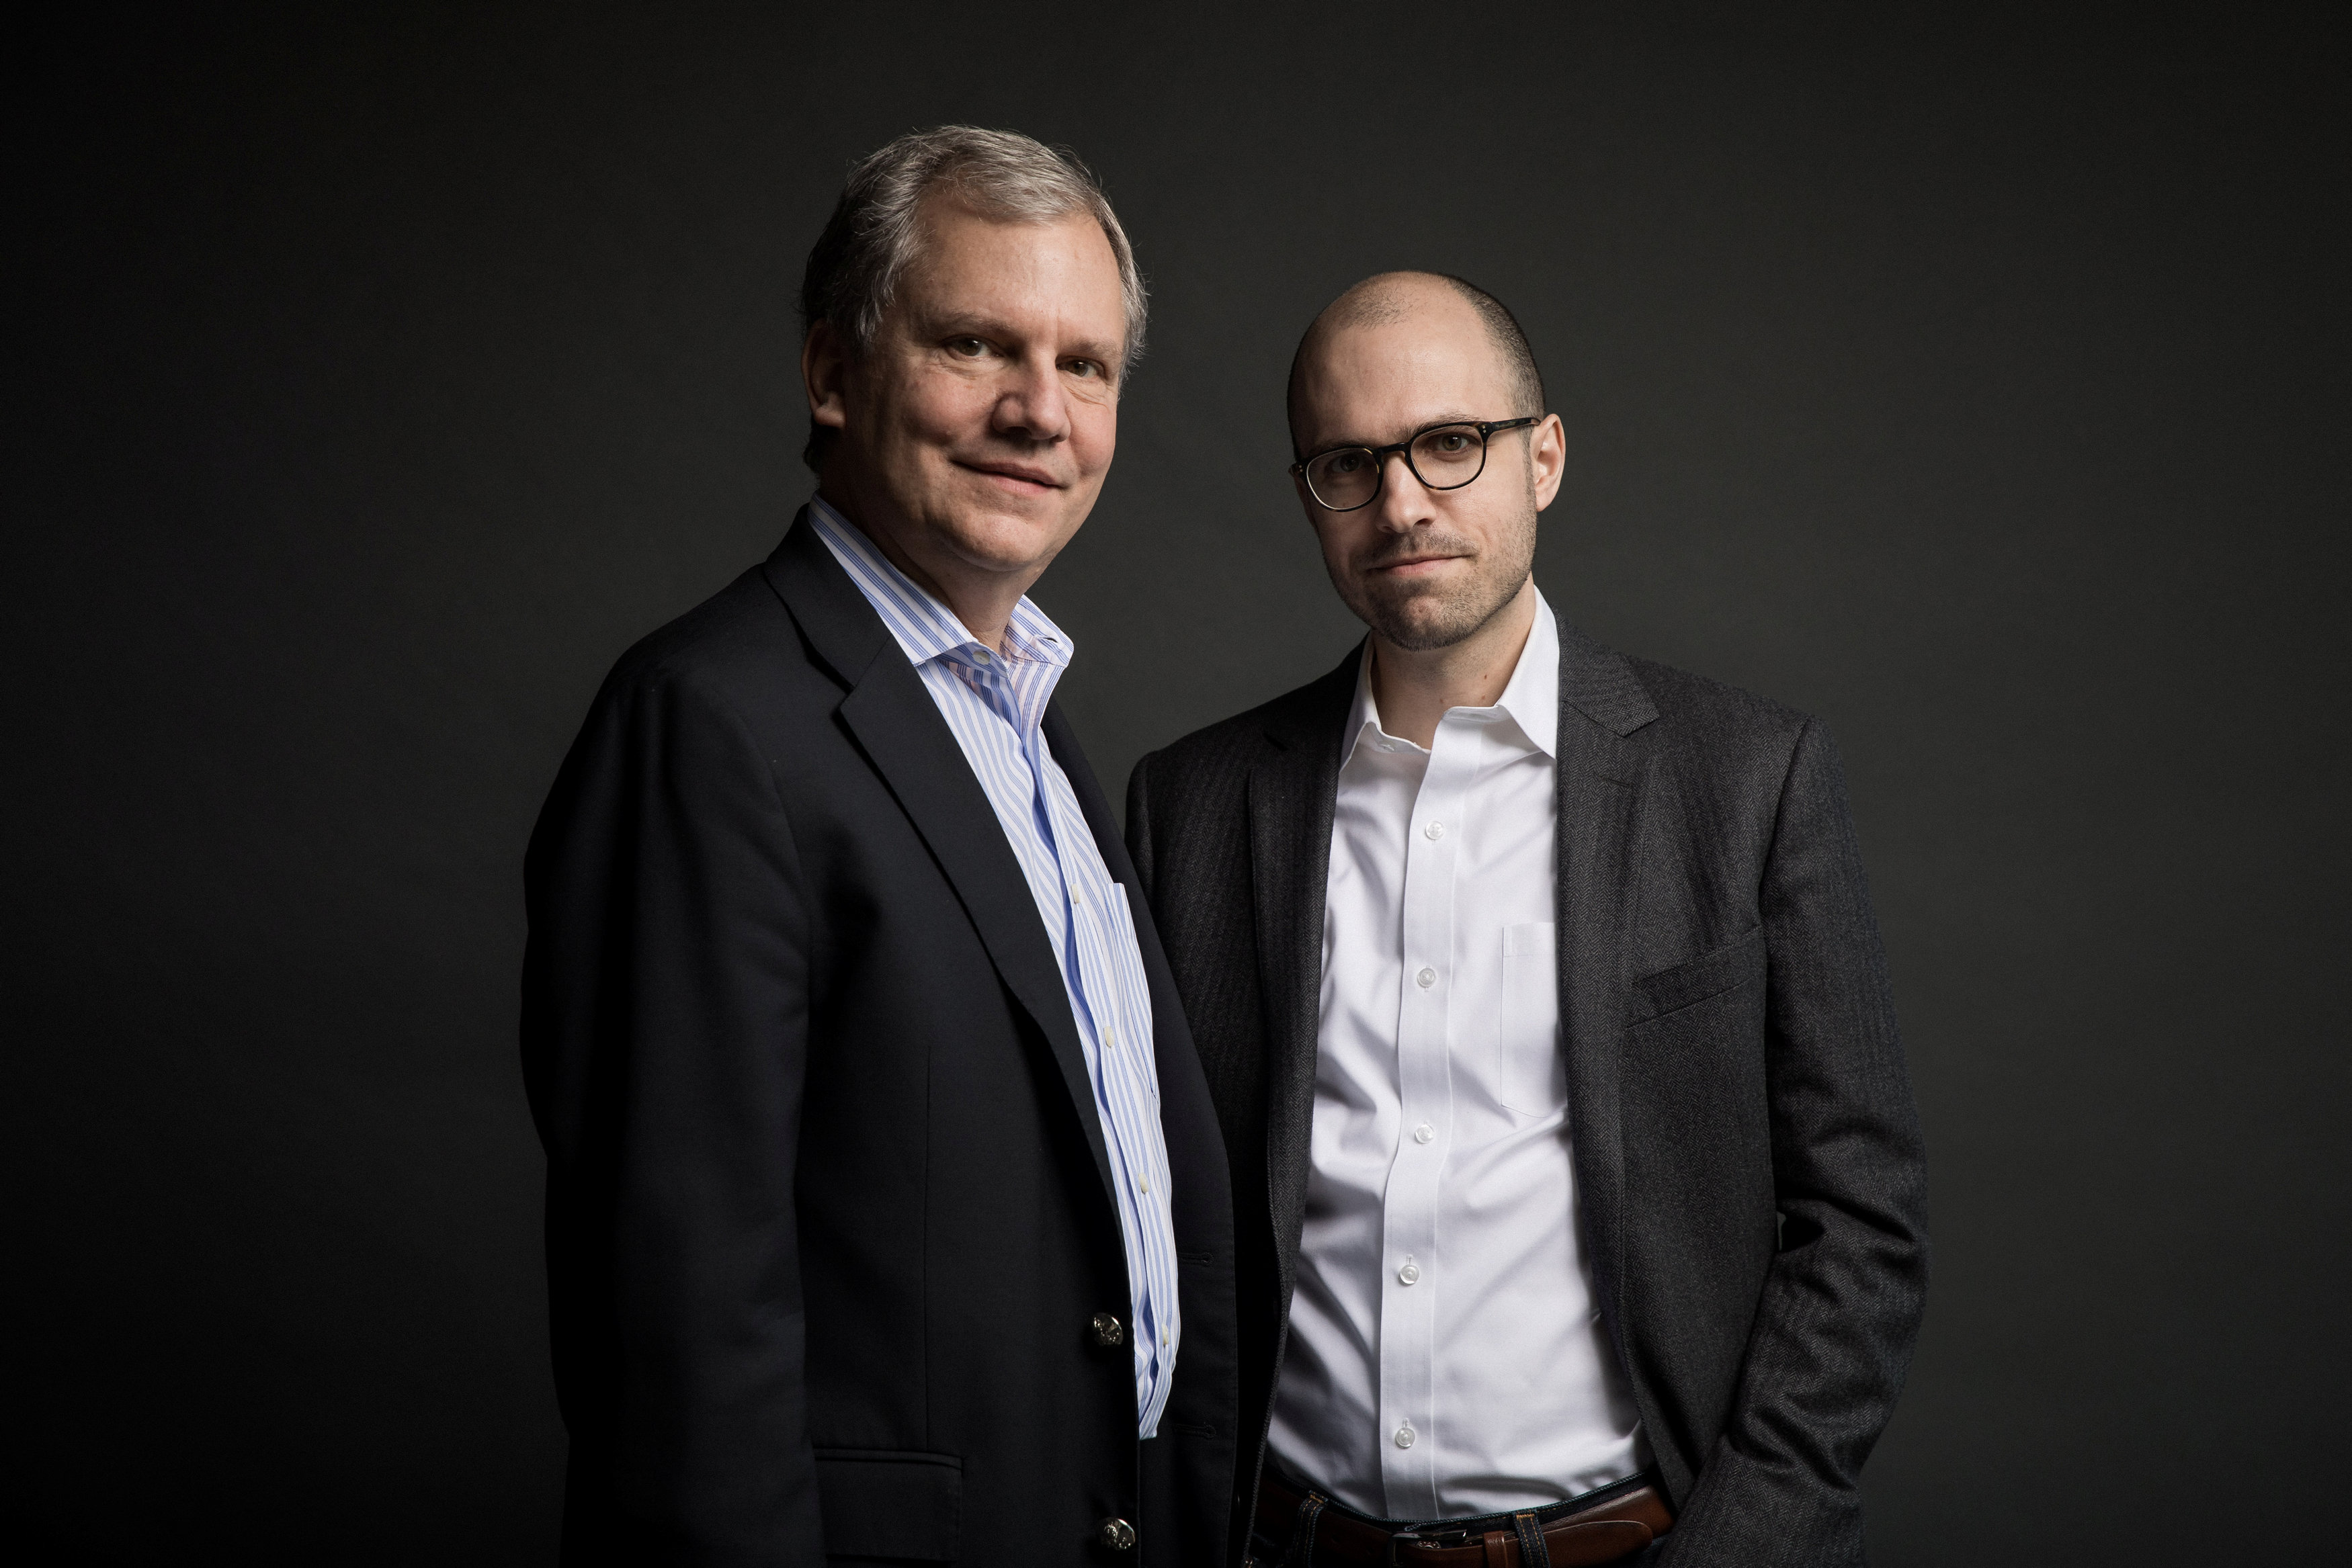 Arthur Gregg (A.G.) Sulzberger and his father Arthur Ochs Sulzberger Jr. on the 16th floor of the New York Times building in New York